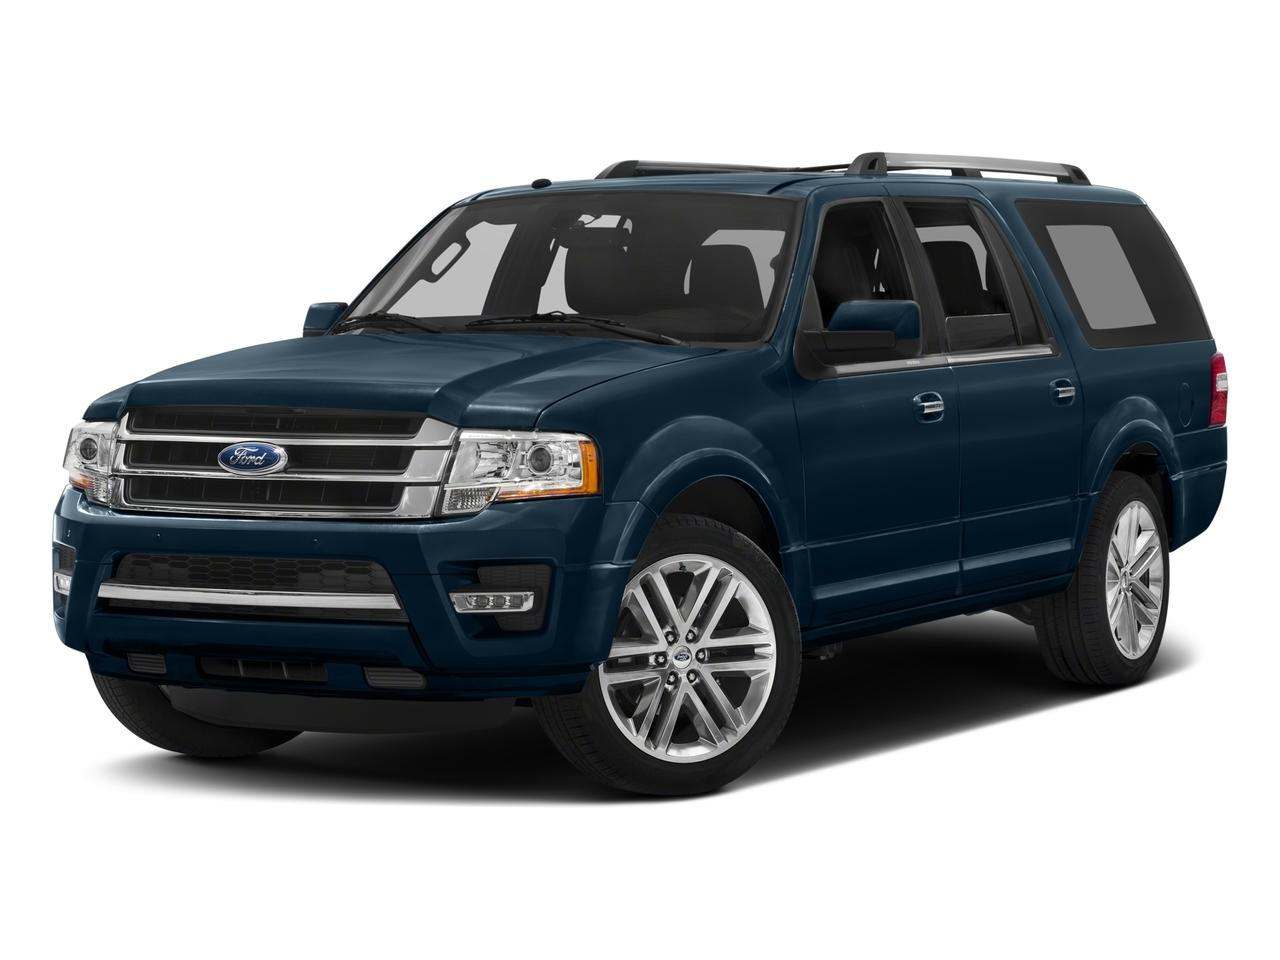 2016 Ford Expedition EL Vehicle Photo in Tucson, AZ 85711